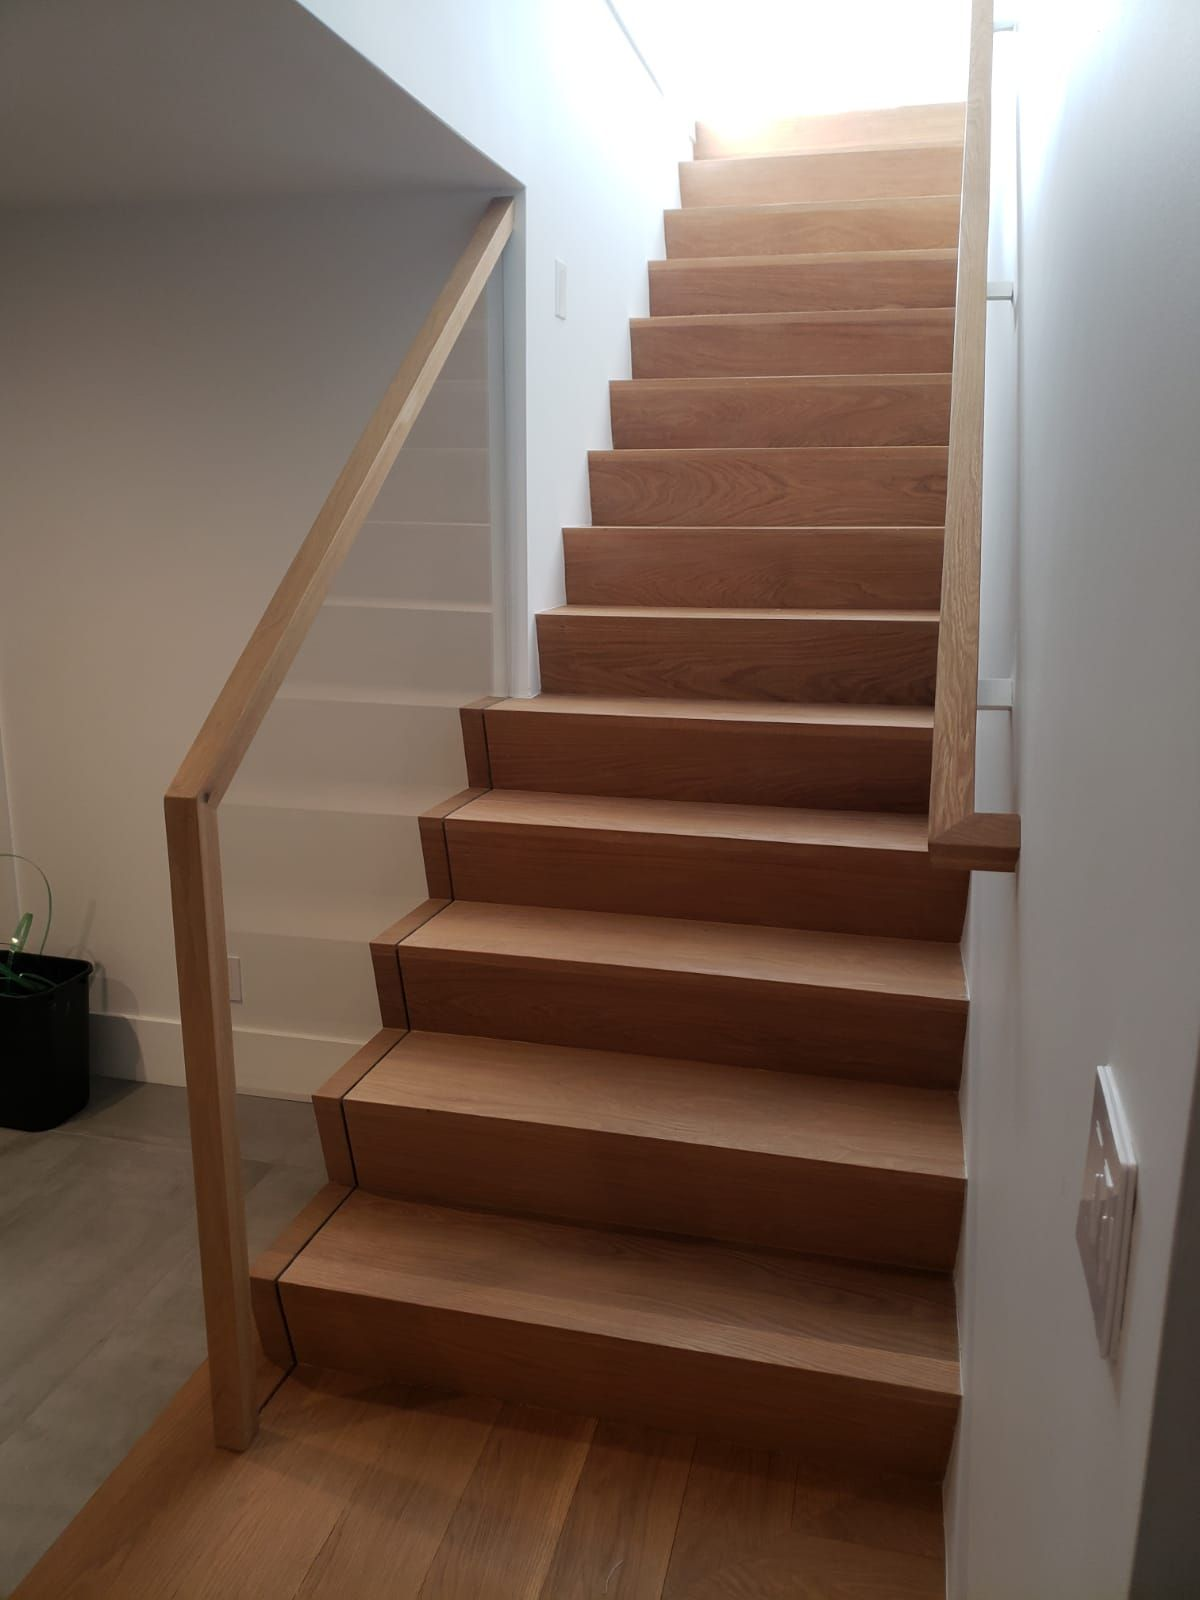 Best Wood Staircase Framed With A Sleek Glass Railing With A 640 x 480